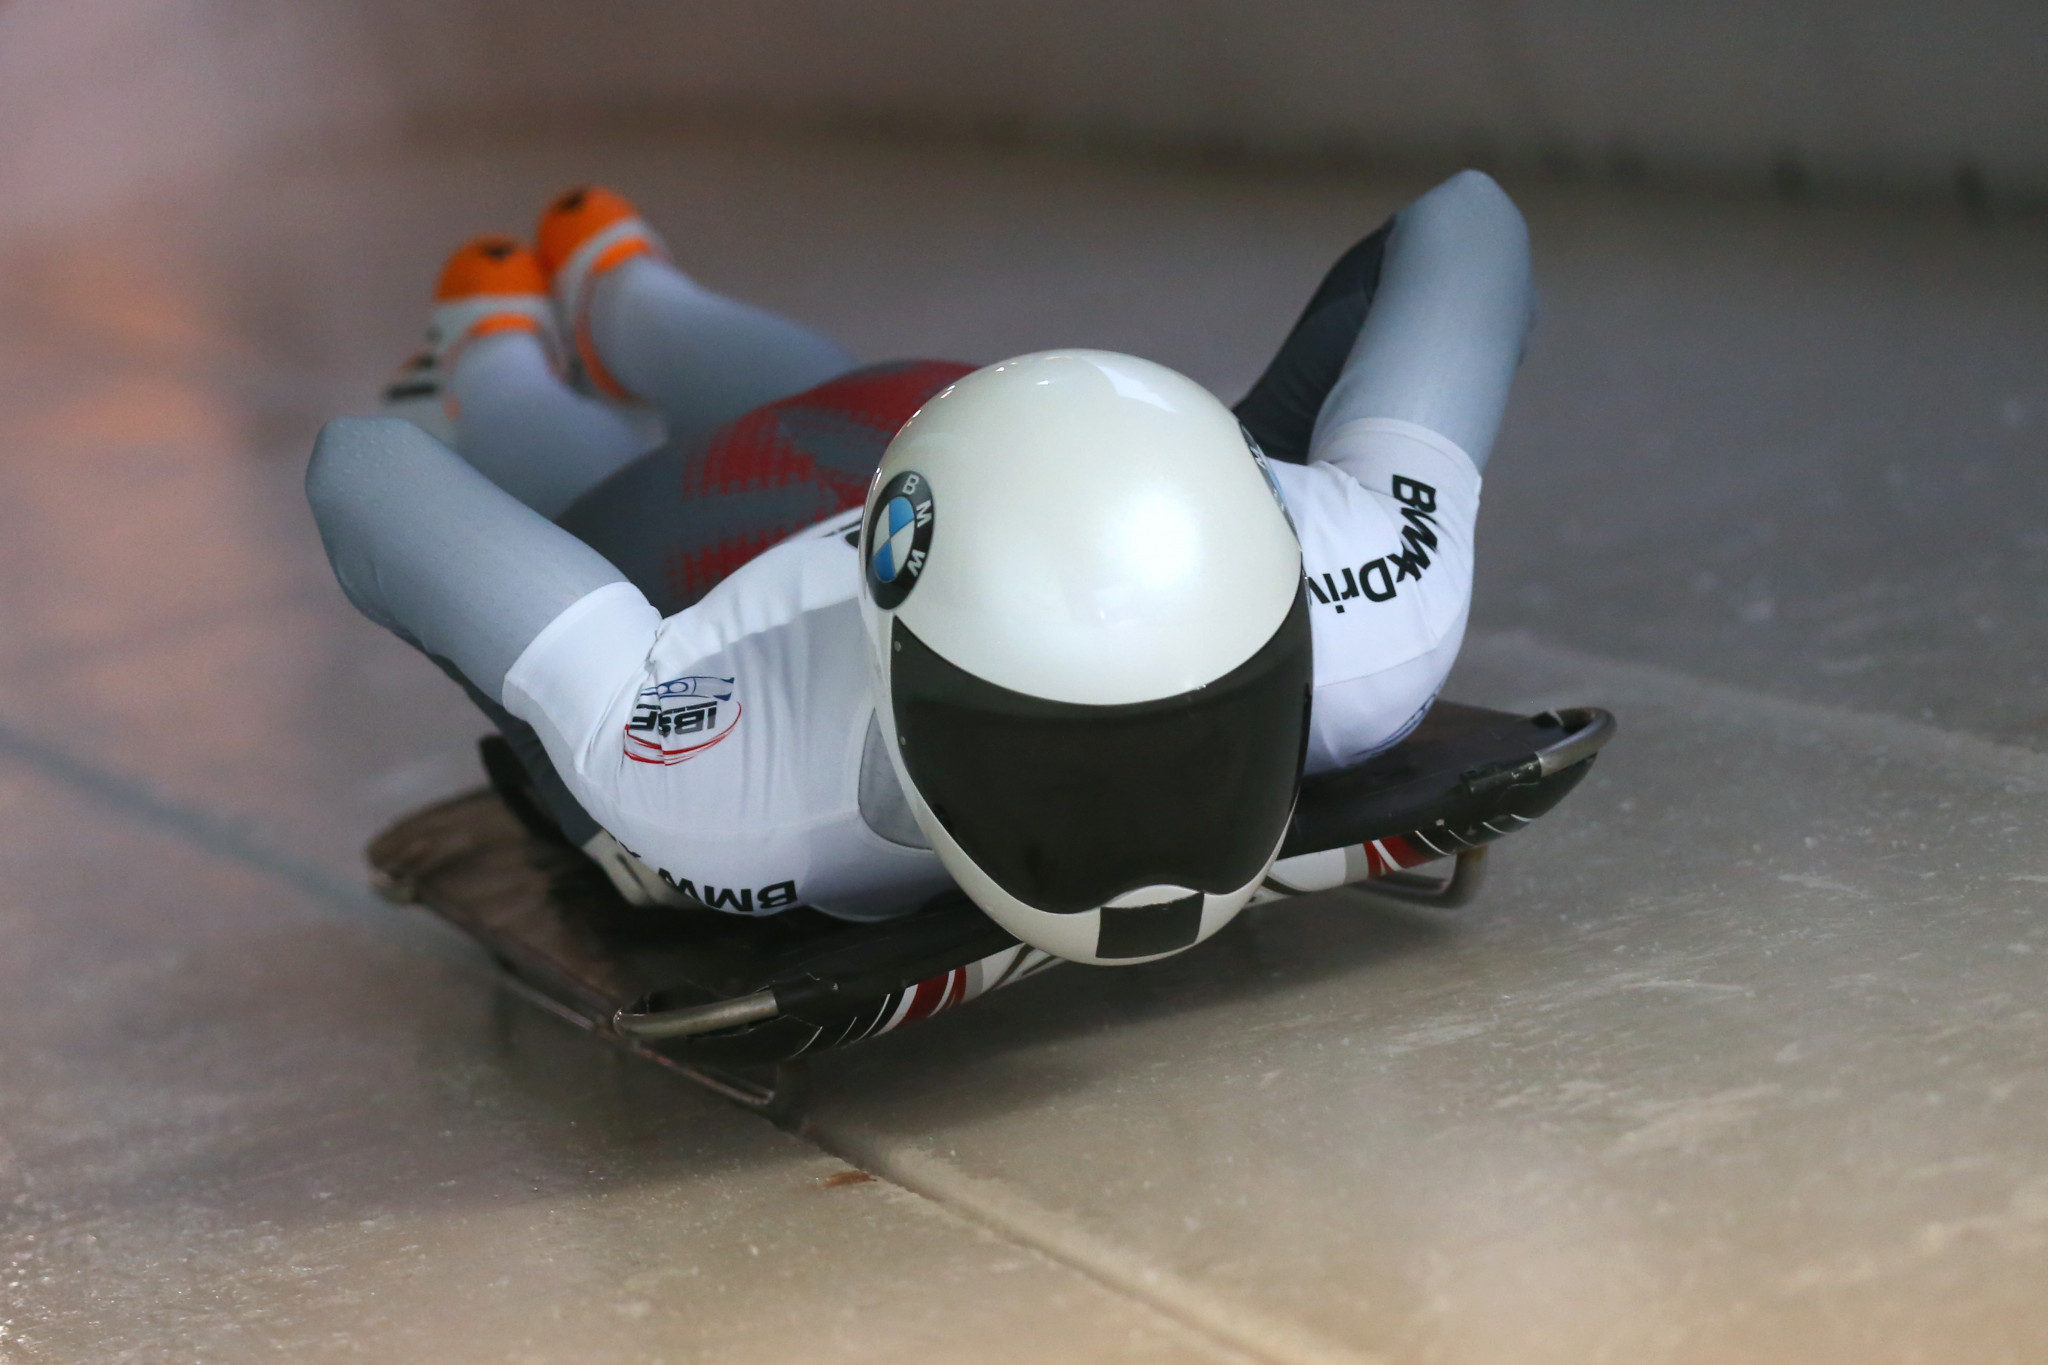 IBSF say pre-homologation of Beijing 2022 sliding venue to take place as planned